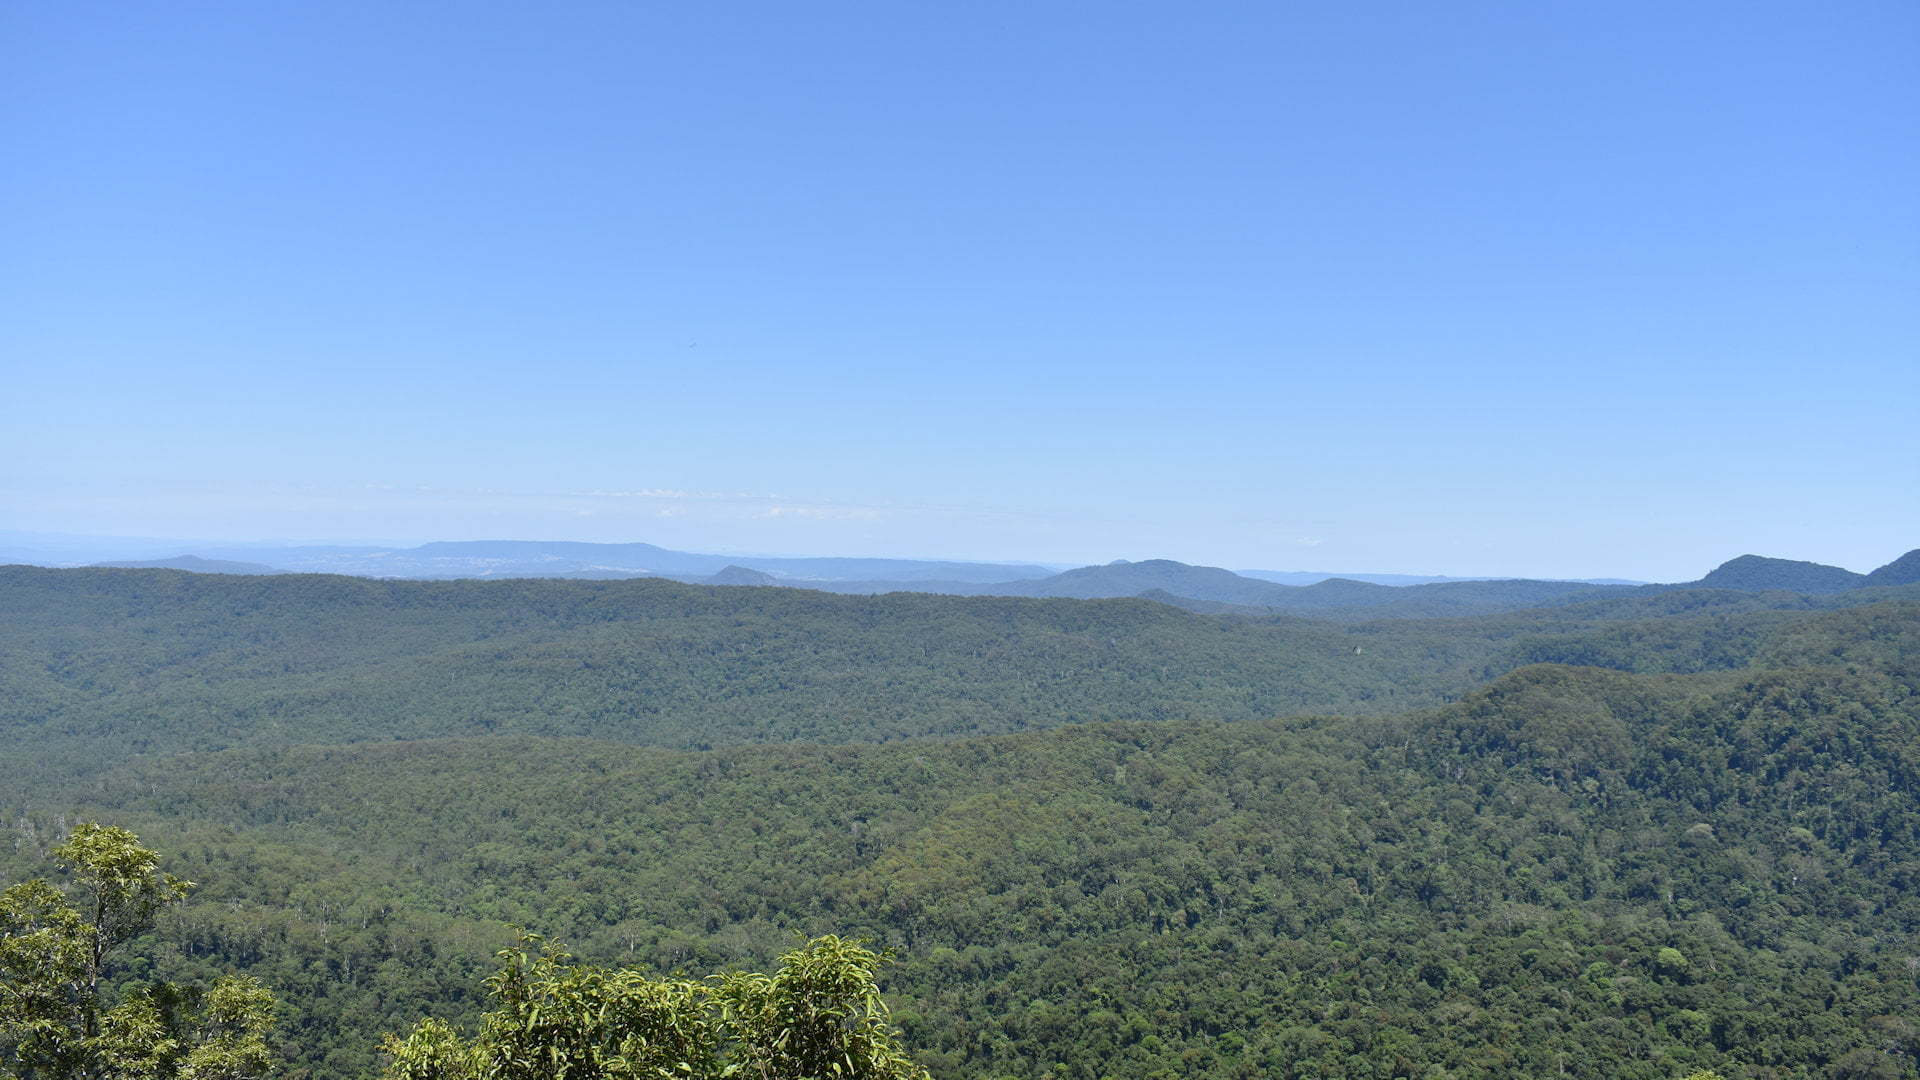 View from Murray Scrub Lookout at Toonumbar National Park